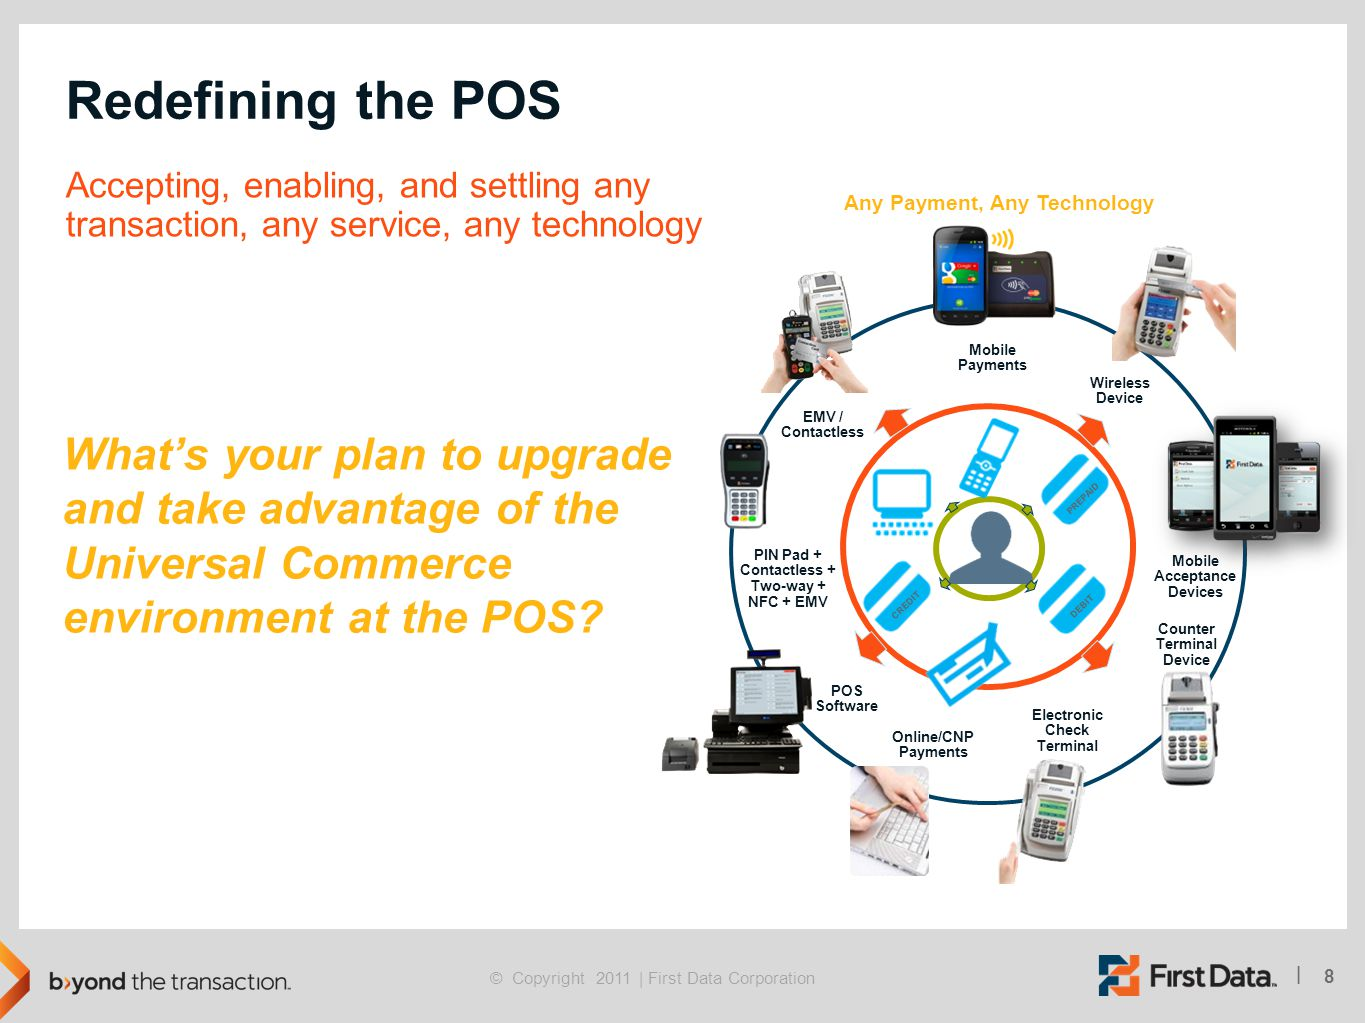 Redefining the POS Accepting, enabling, and settling any transaction, any service, any technology.